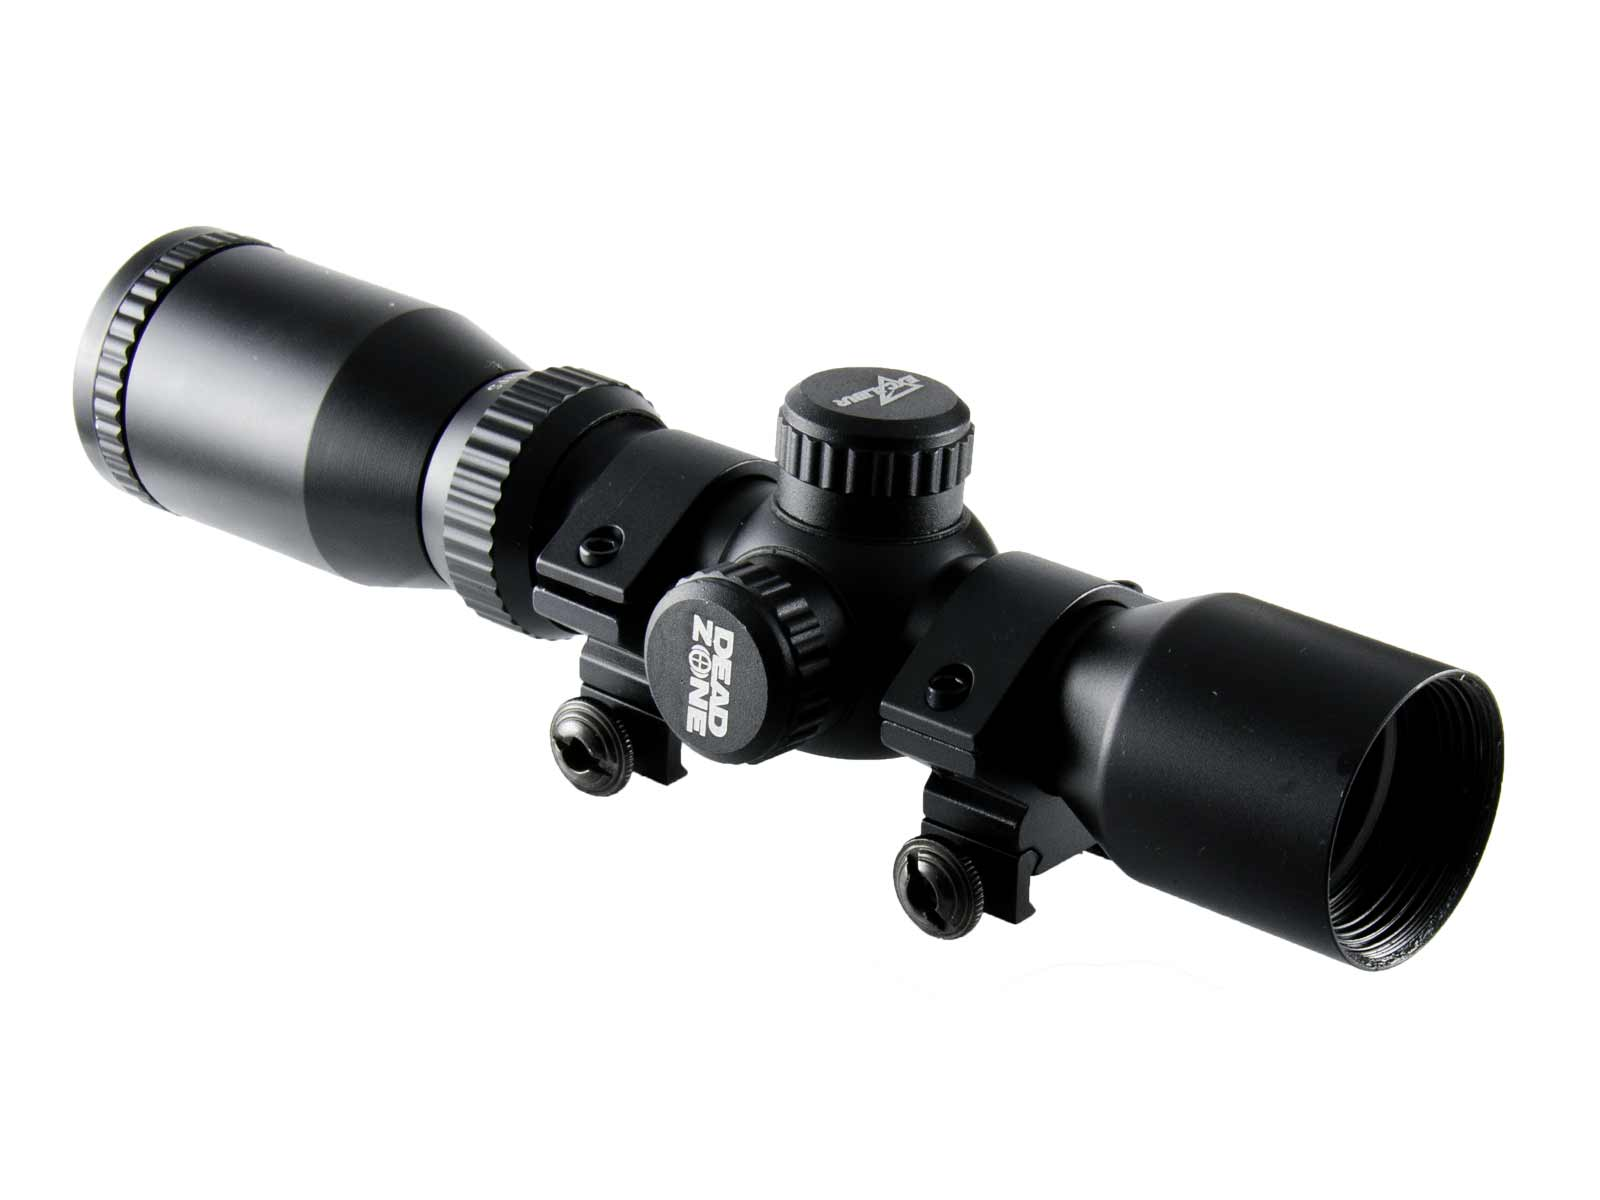 Dead Zone Scope